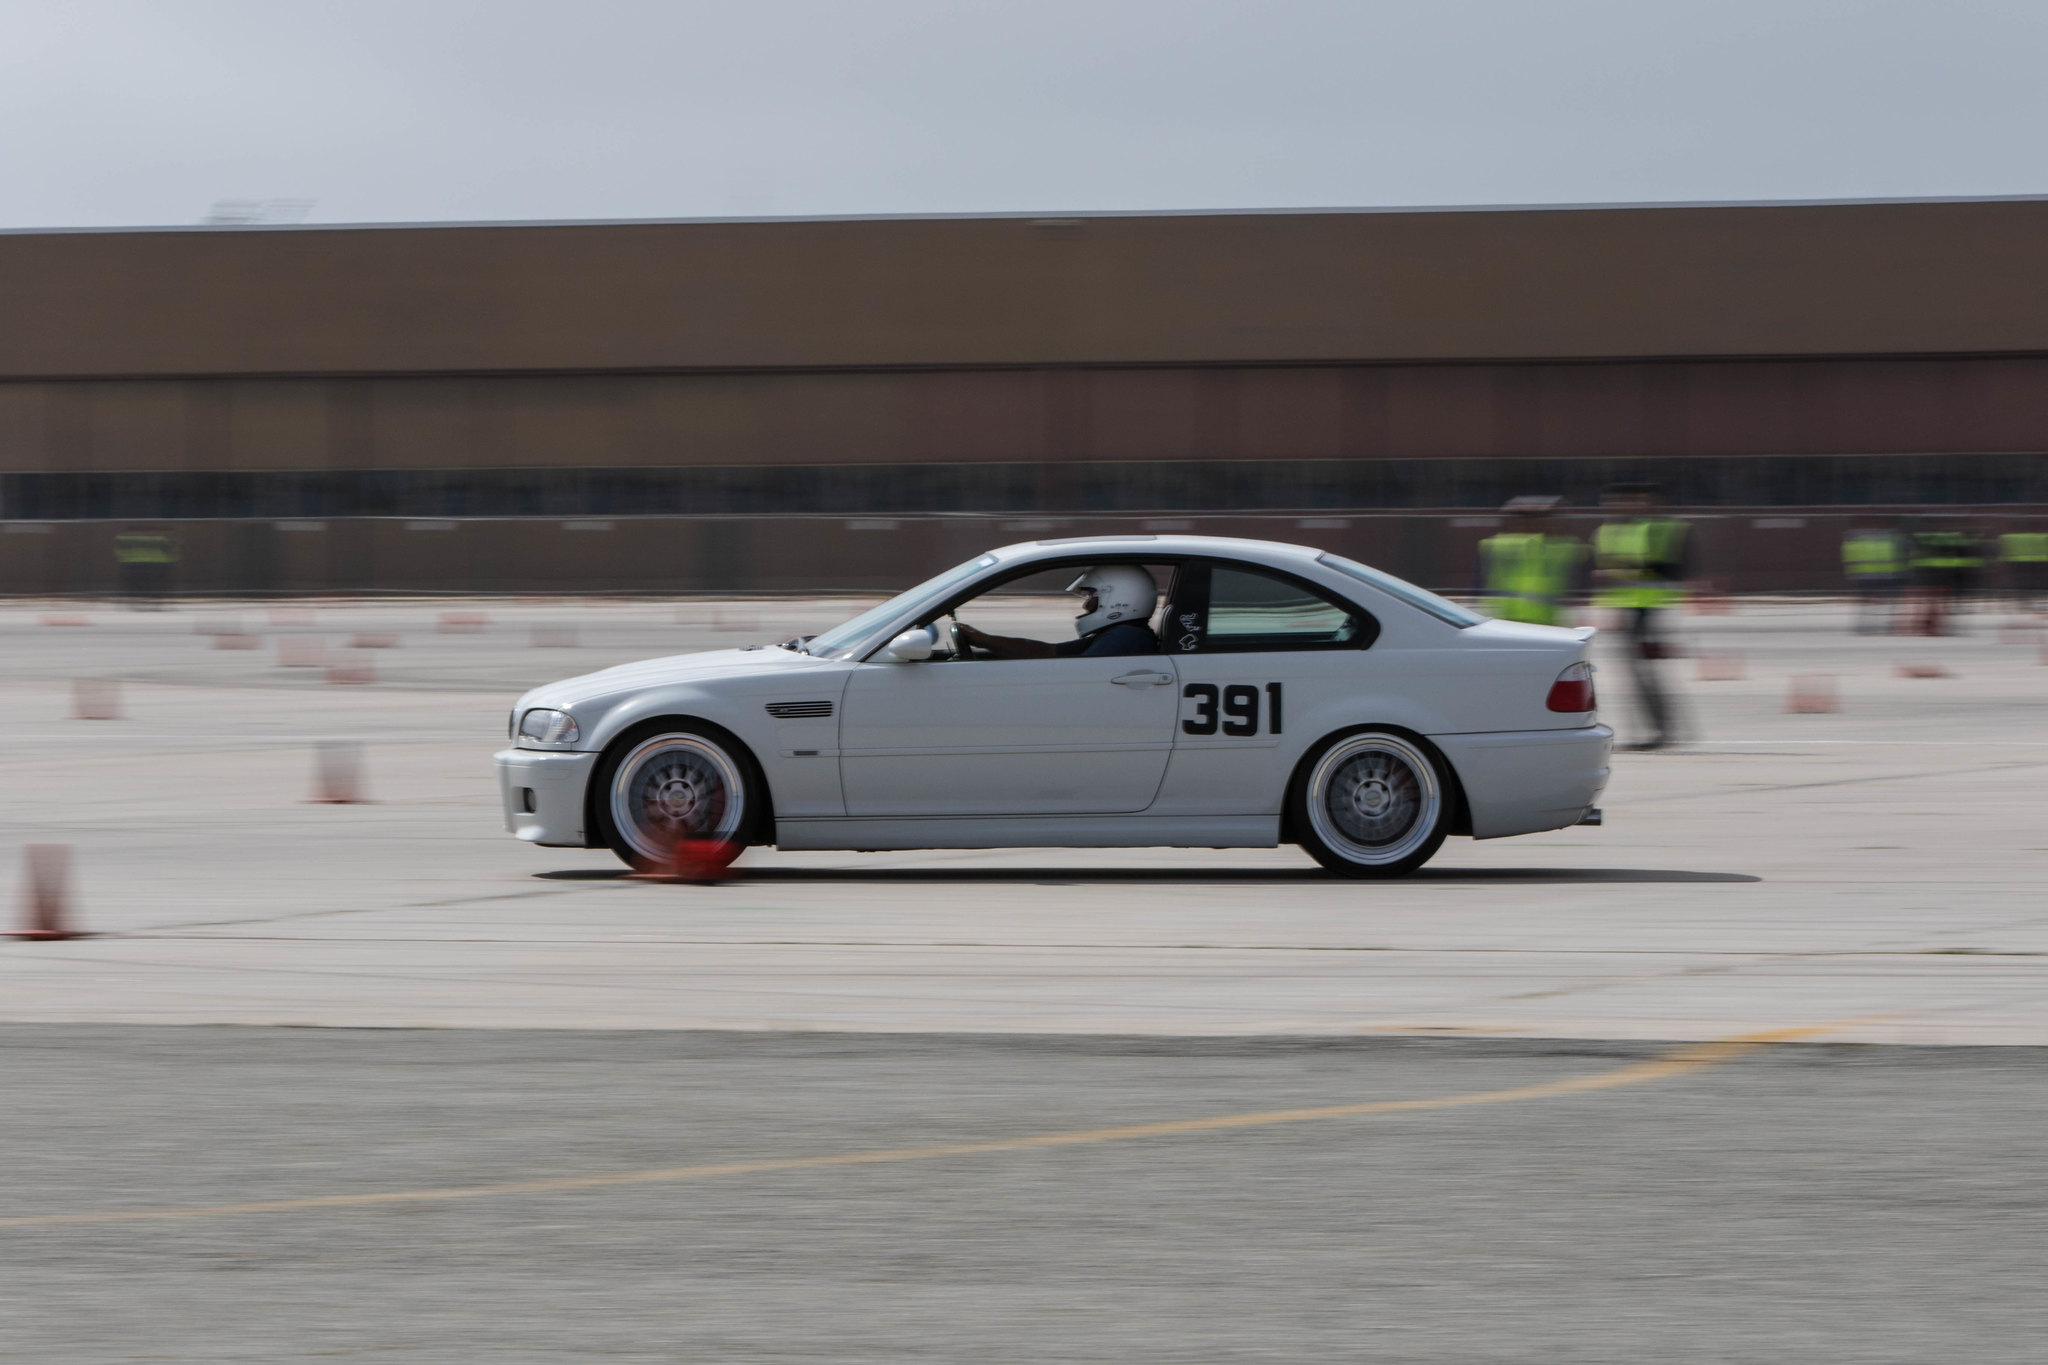 BMWCCA GGC Autocross #4 05/23/15 info on May 23, 2015 (094340